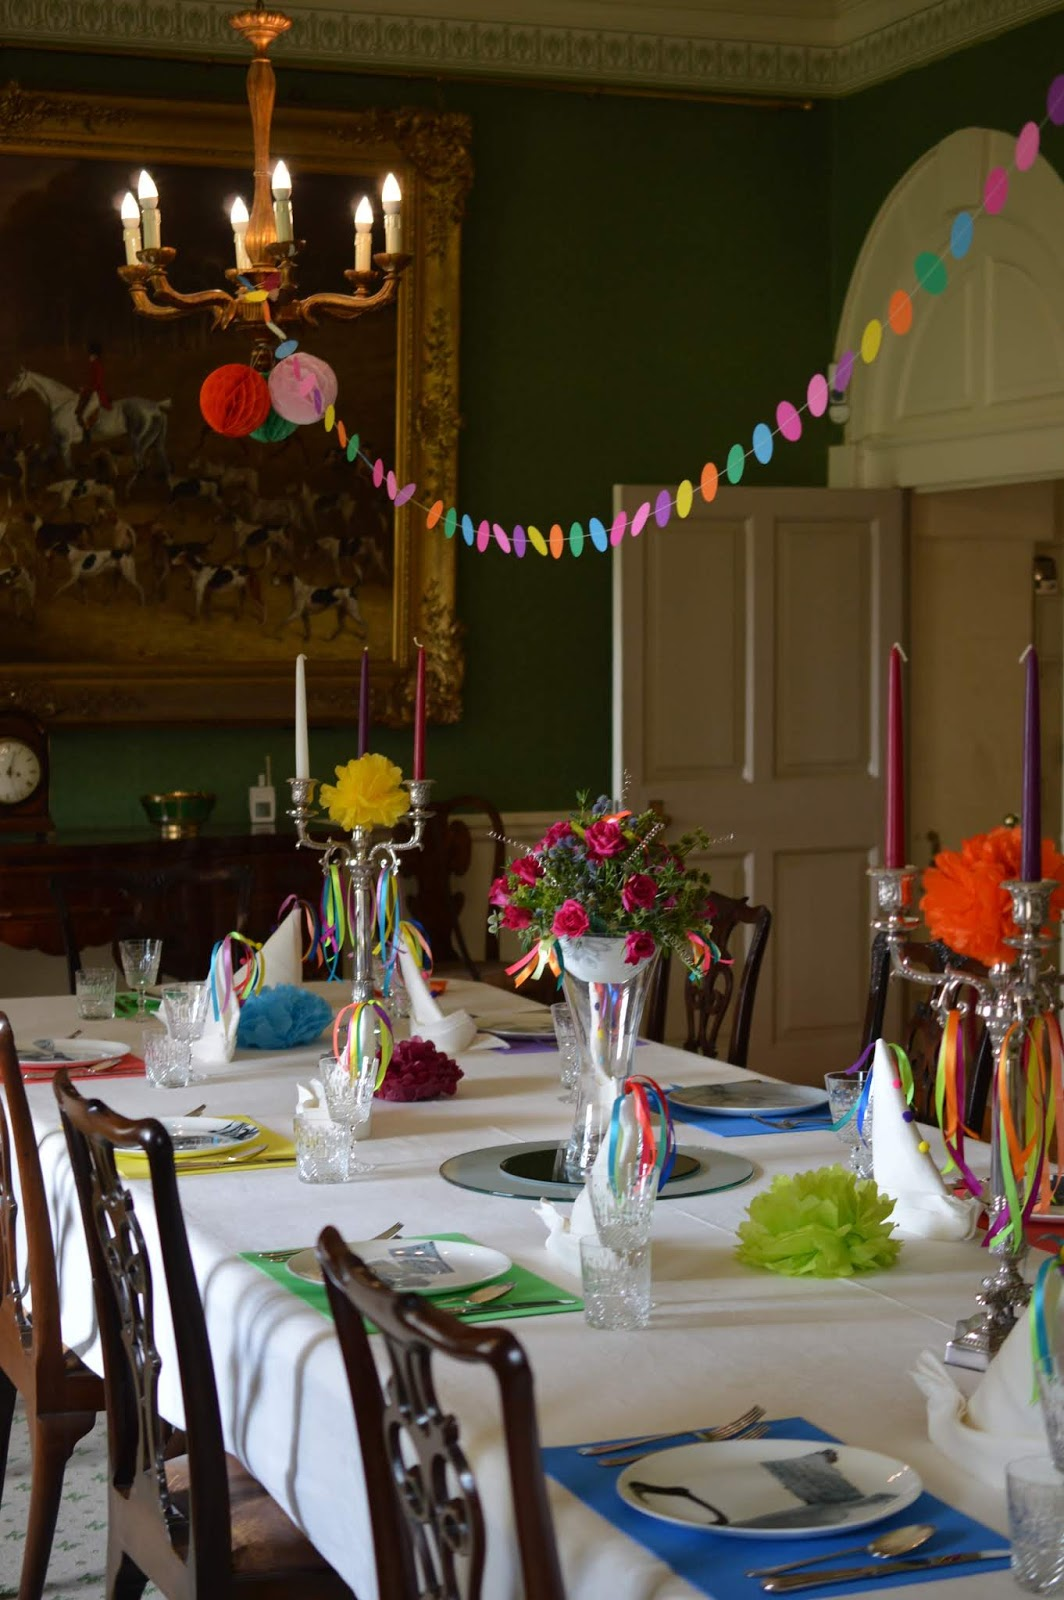 10 Reasons to Visit Seaton Delaval Hall  - dining room party